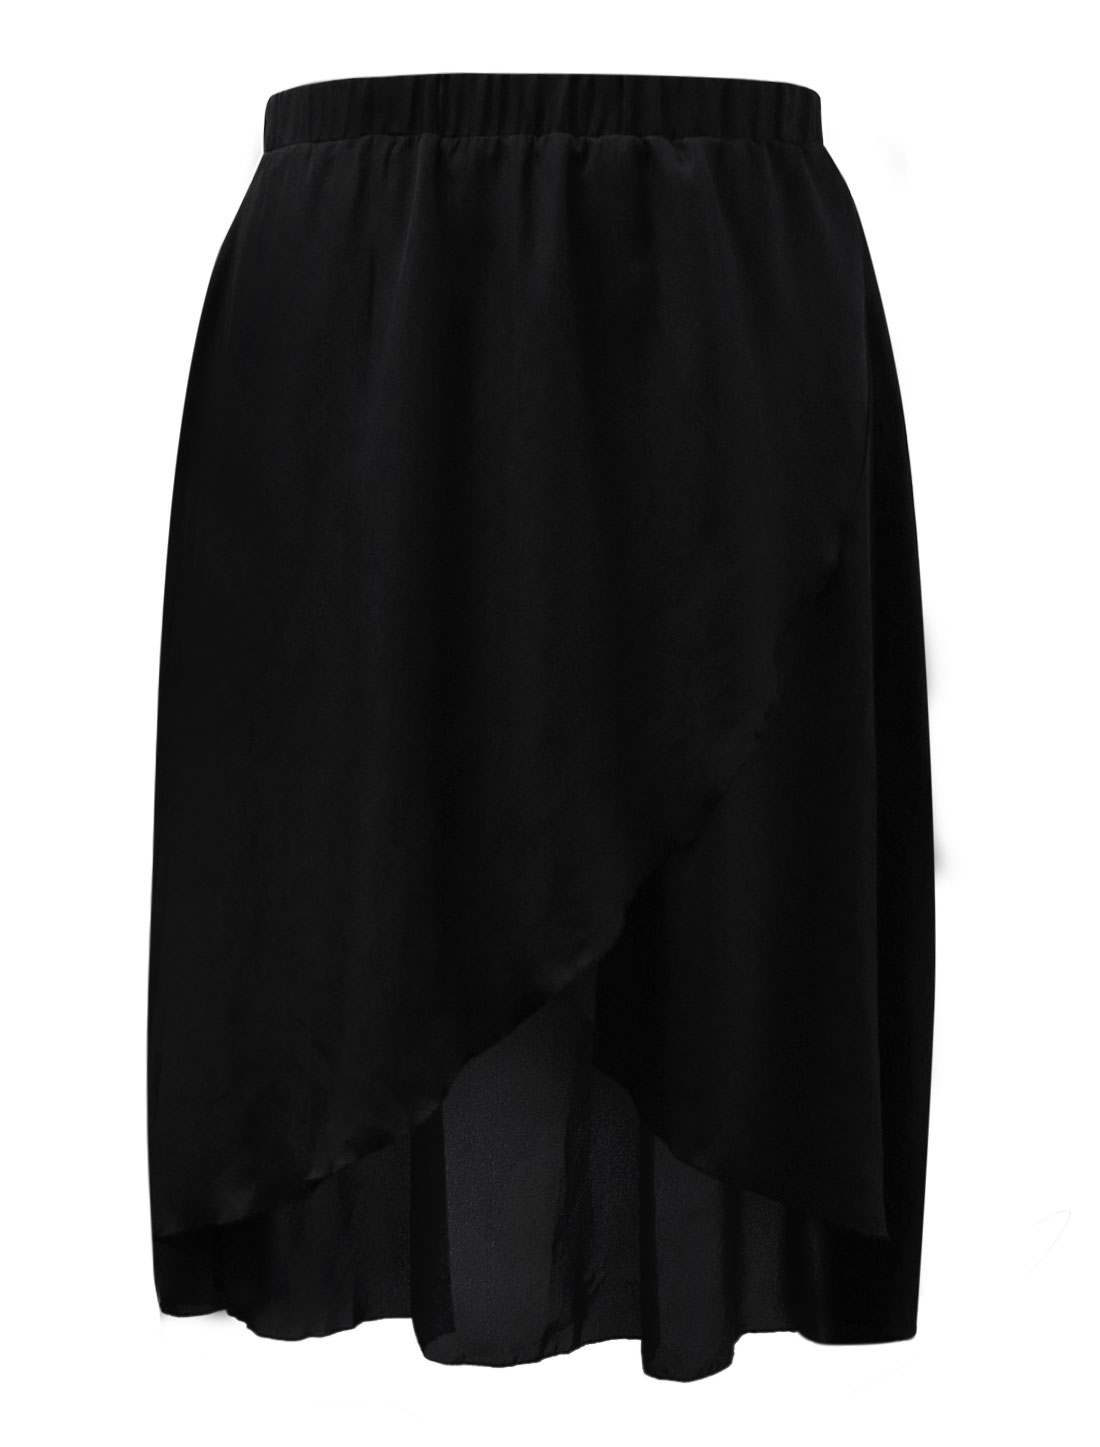 Ladies Elastic Waist Asymmetric Hem Long Skirt Black 3X